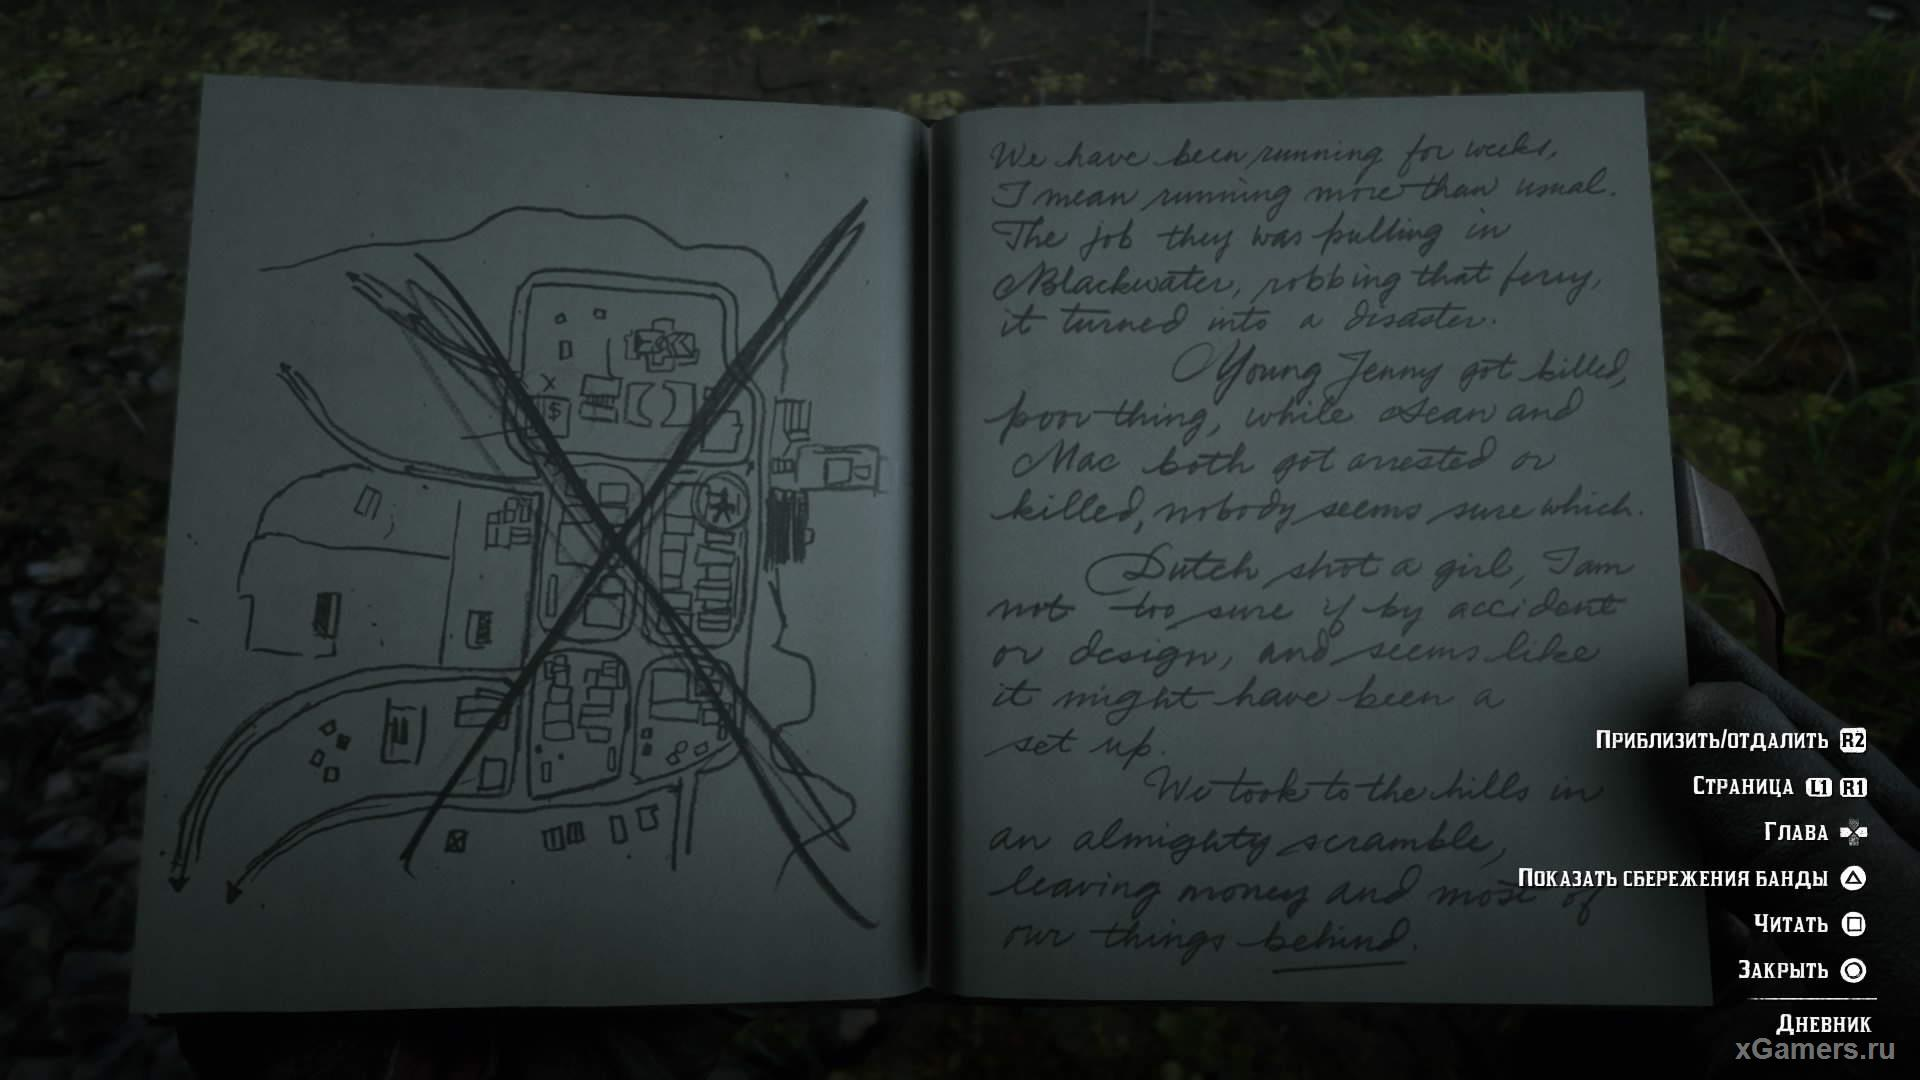 Morgan s diary is a kind of chronicle of his adventures.